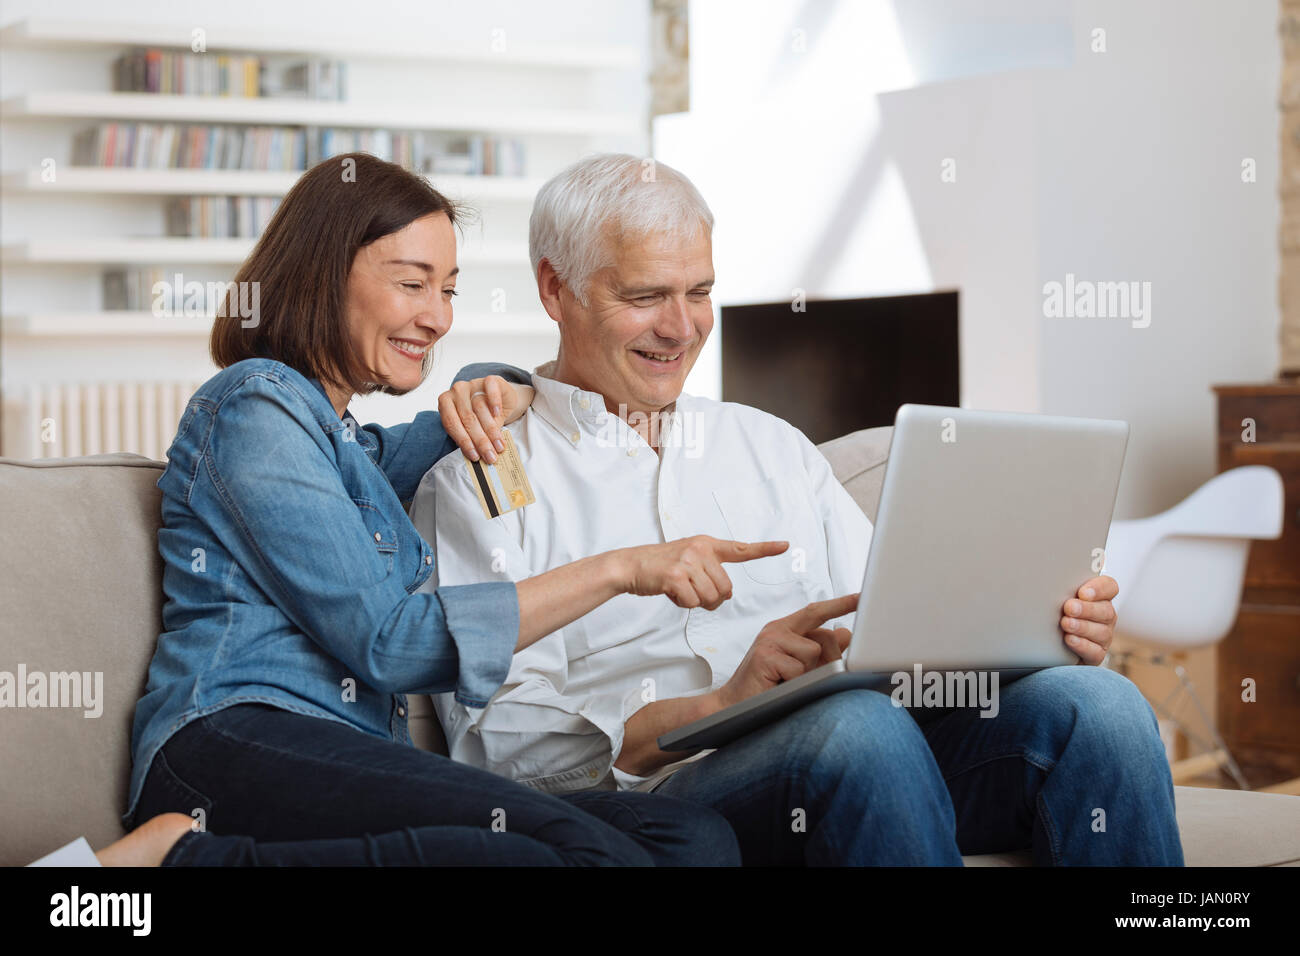 Mature Couple connected with laptop and shopping online - Stock Image